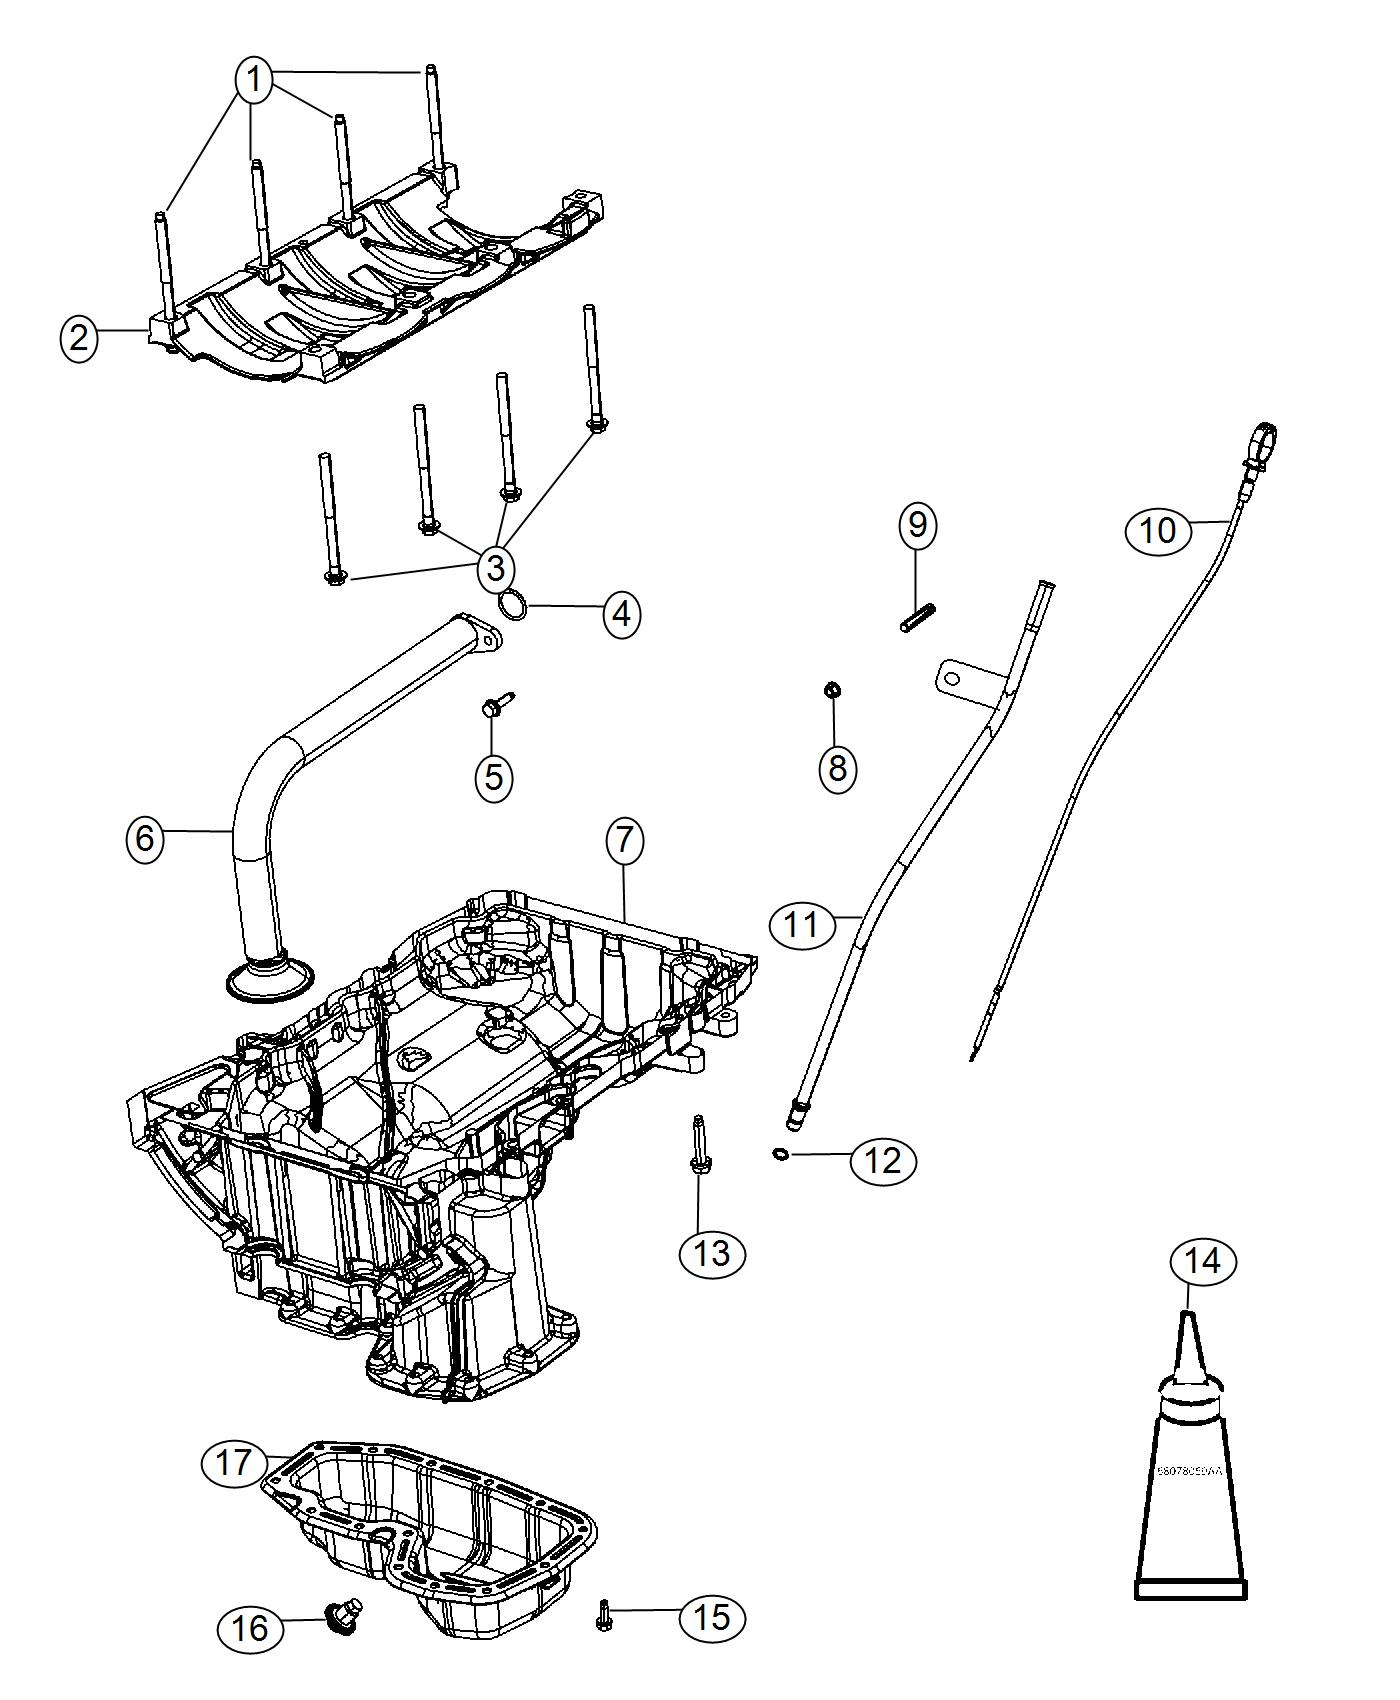 Jeep Grand Cherokee Pan Oil Upper Engine Level